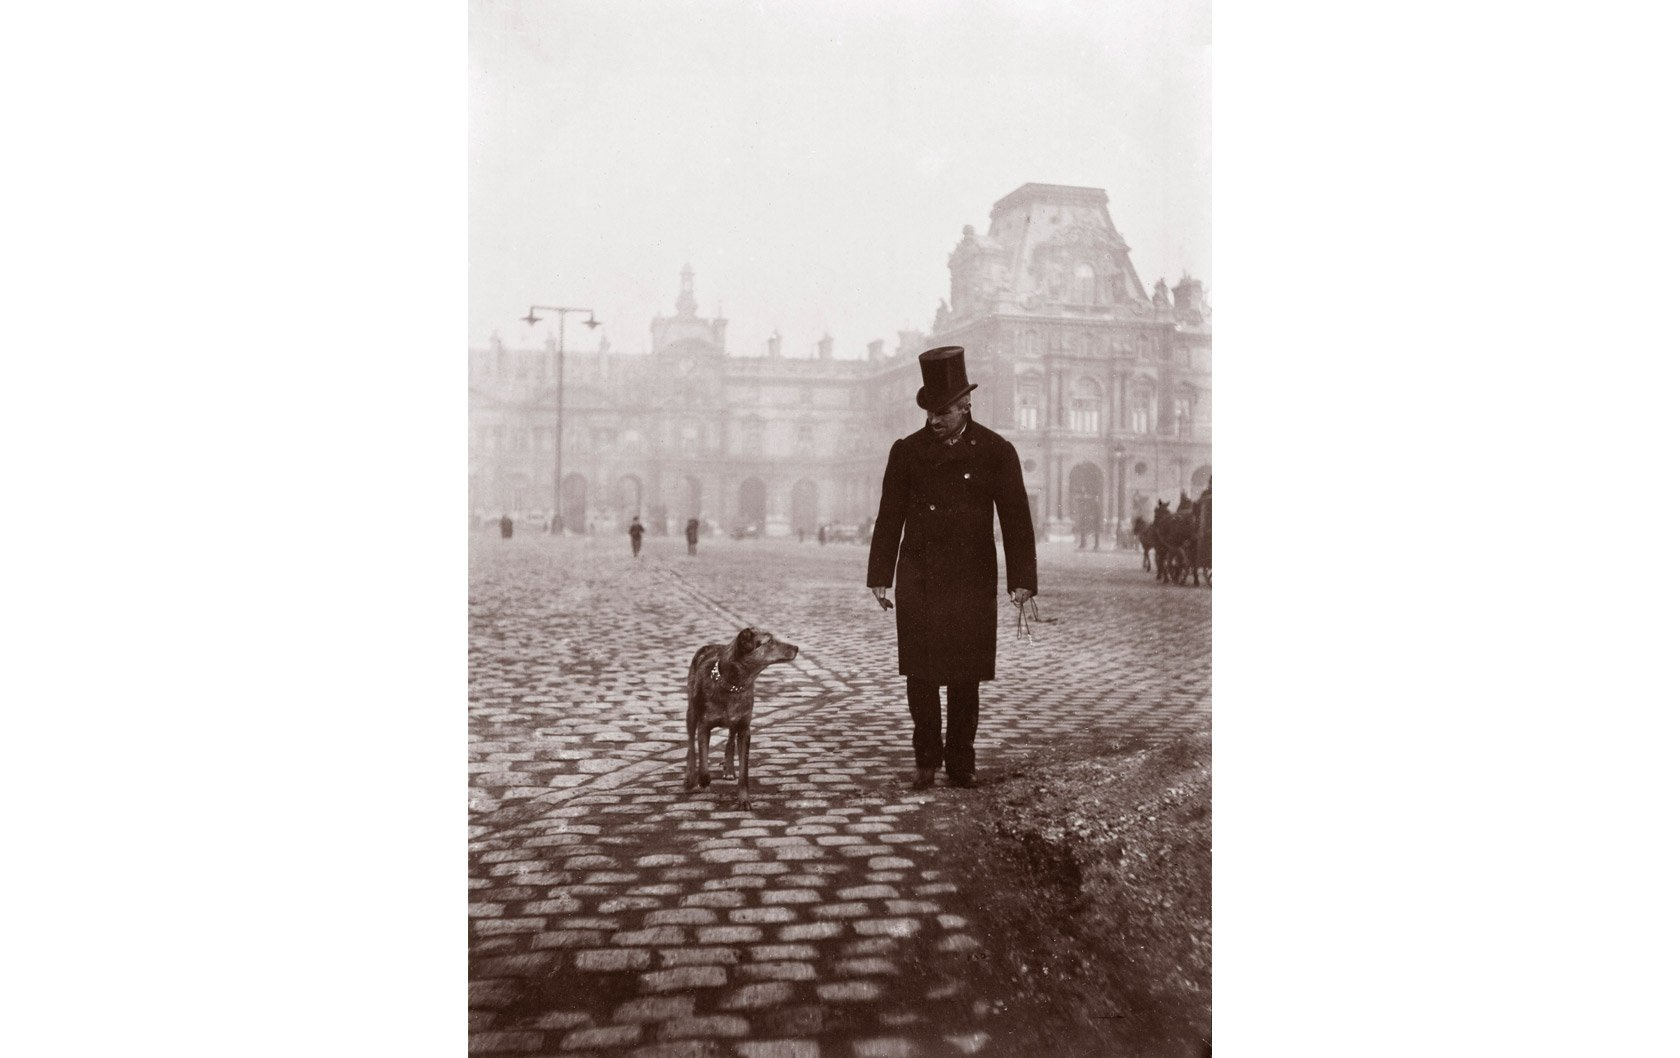 caillebotte-martial-photographer